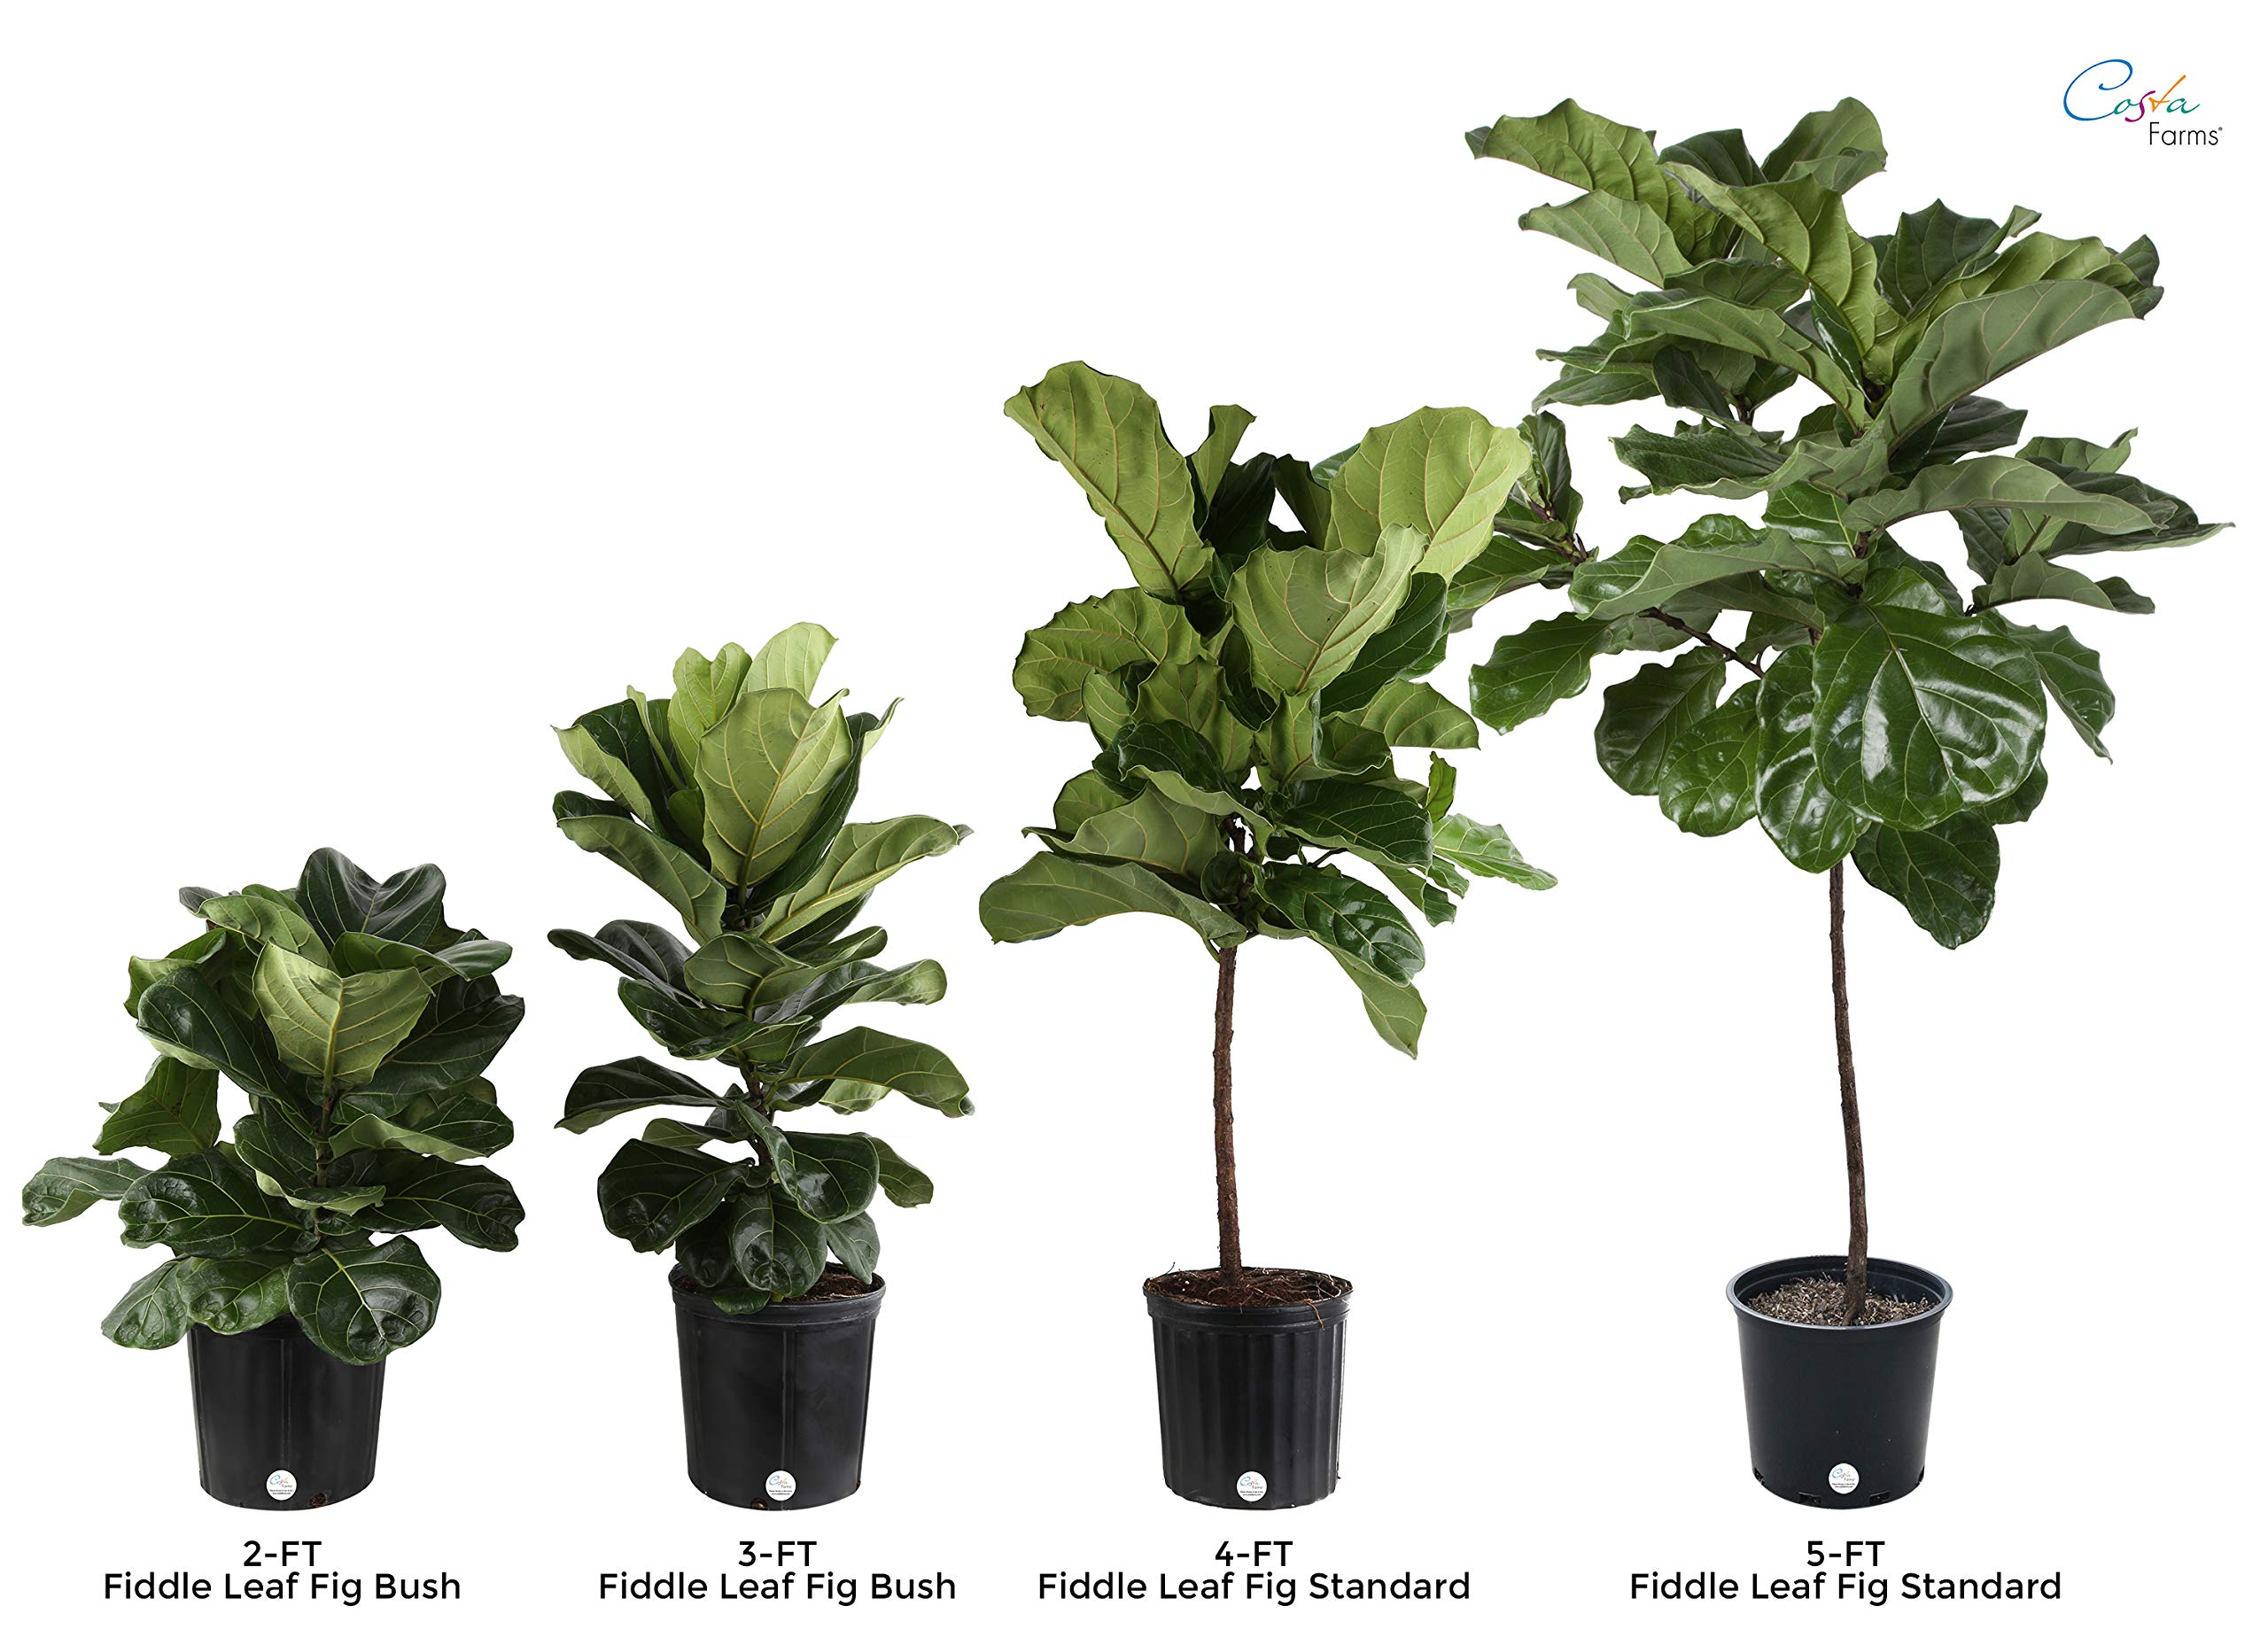 Costa Farms Live Ficus Lyrata, Fiddle-Leaf Fig, Floor Plant, 4-Feet Tall, Ships in Seagrass Basket, White-Natural, Fresh From Our Farm by Costa Farms (Image #2)